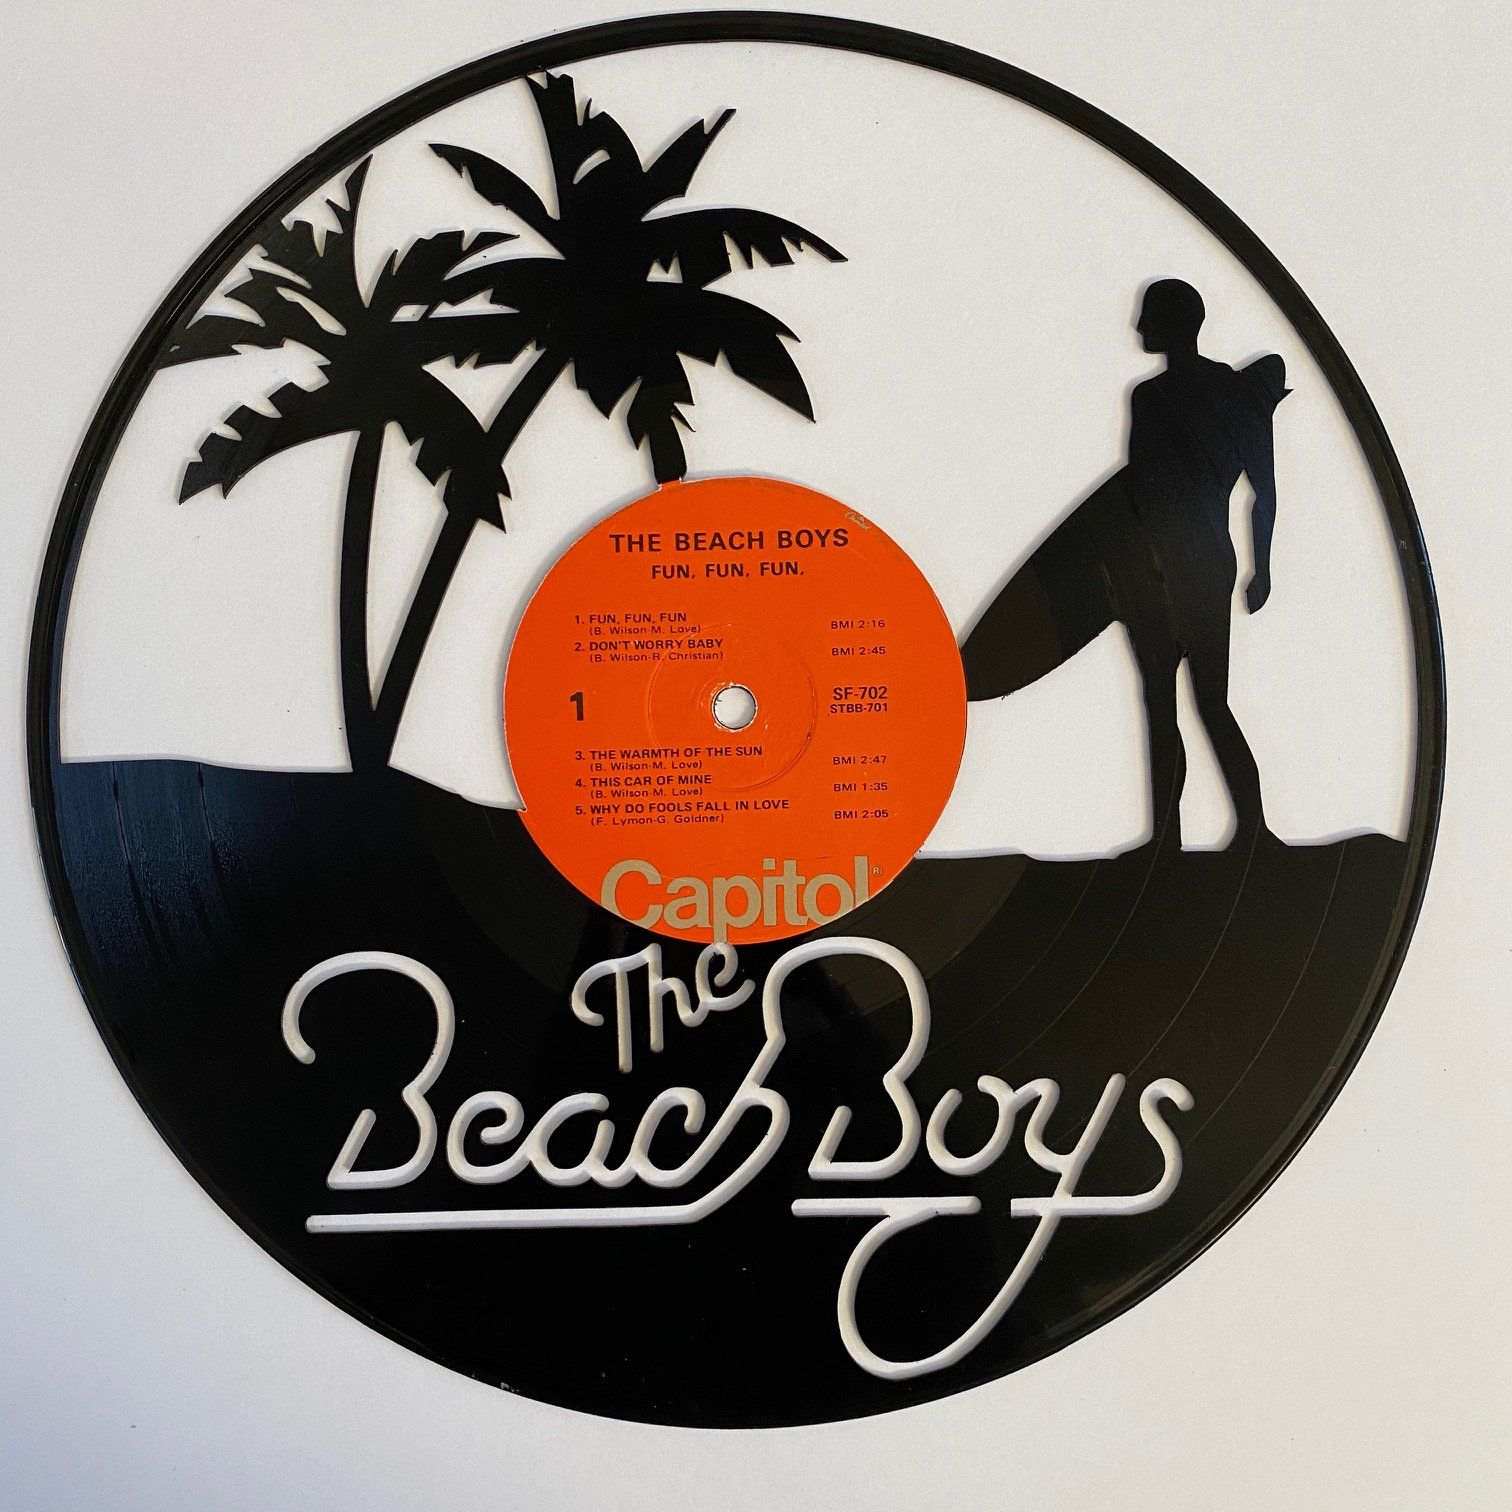 Excited To Share The Latest Addition To My Etsy Shop Beach Boys Vinyl Record Art Https Etsy Me 2ui56ej Houseware In 2020 Vinyl Record Art Record Art Vinyl Records